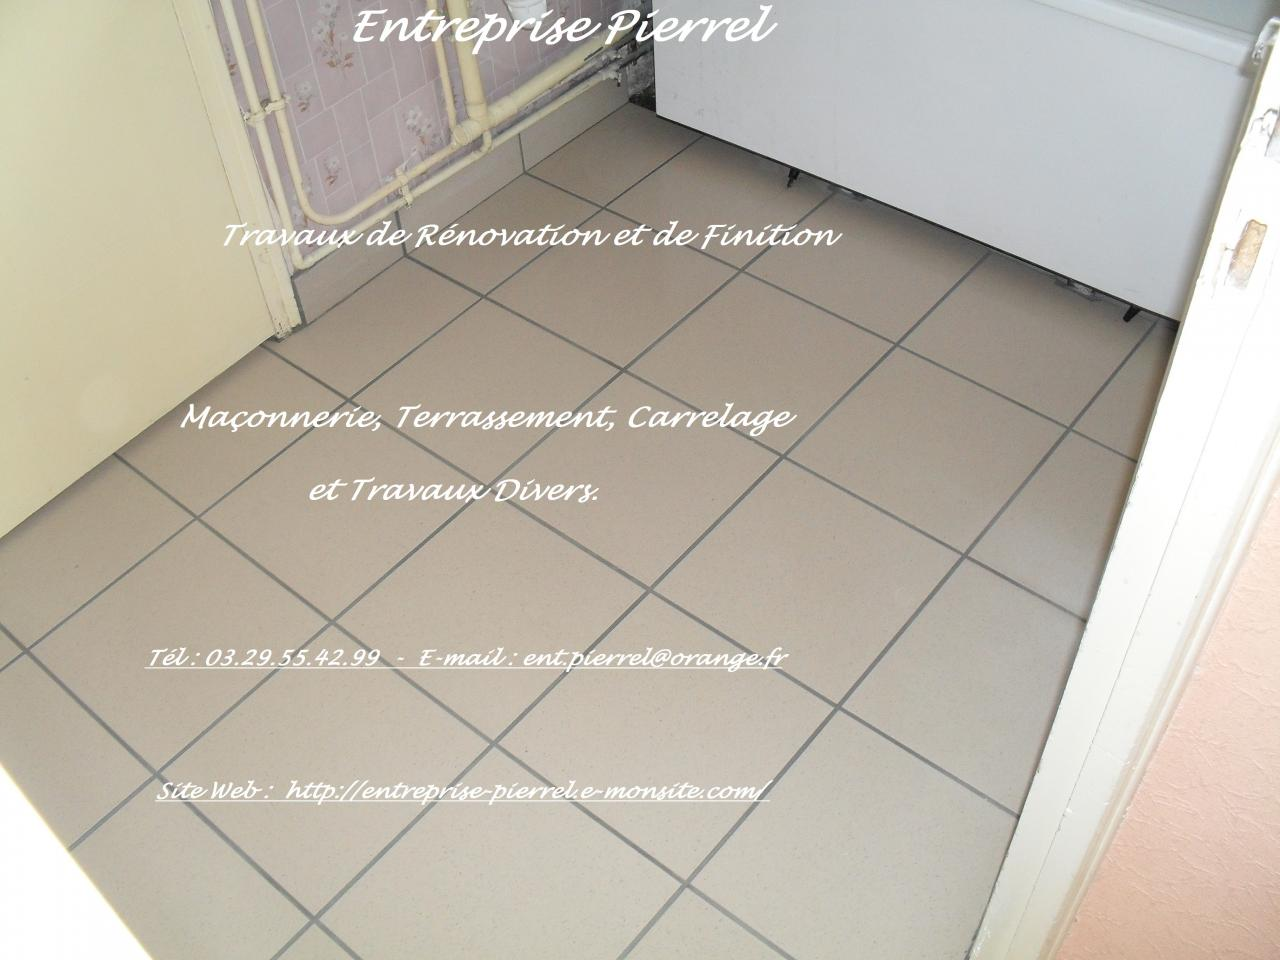 Carrelage au sol photos entreprise pierrel for Entreprise carrelage